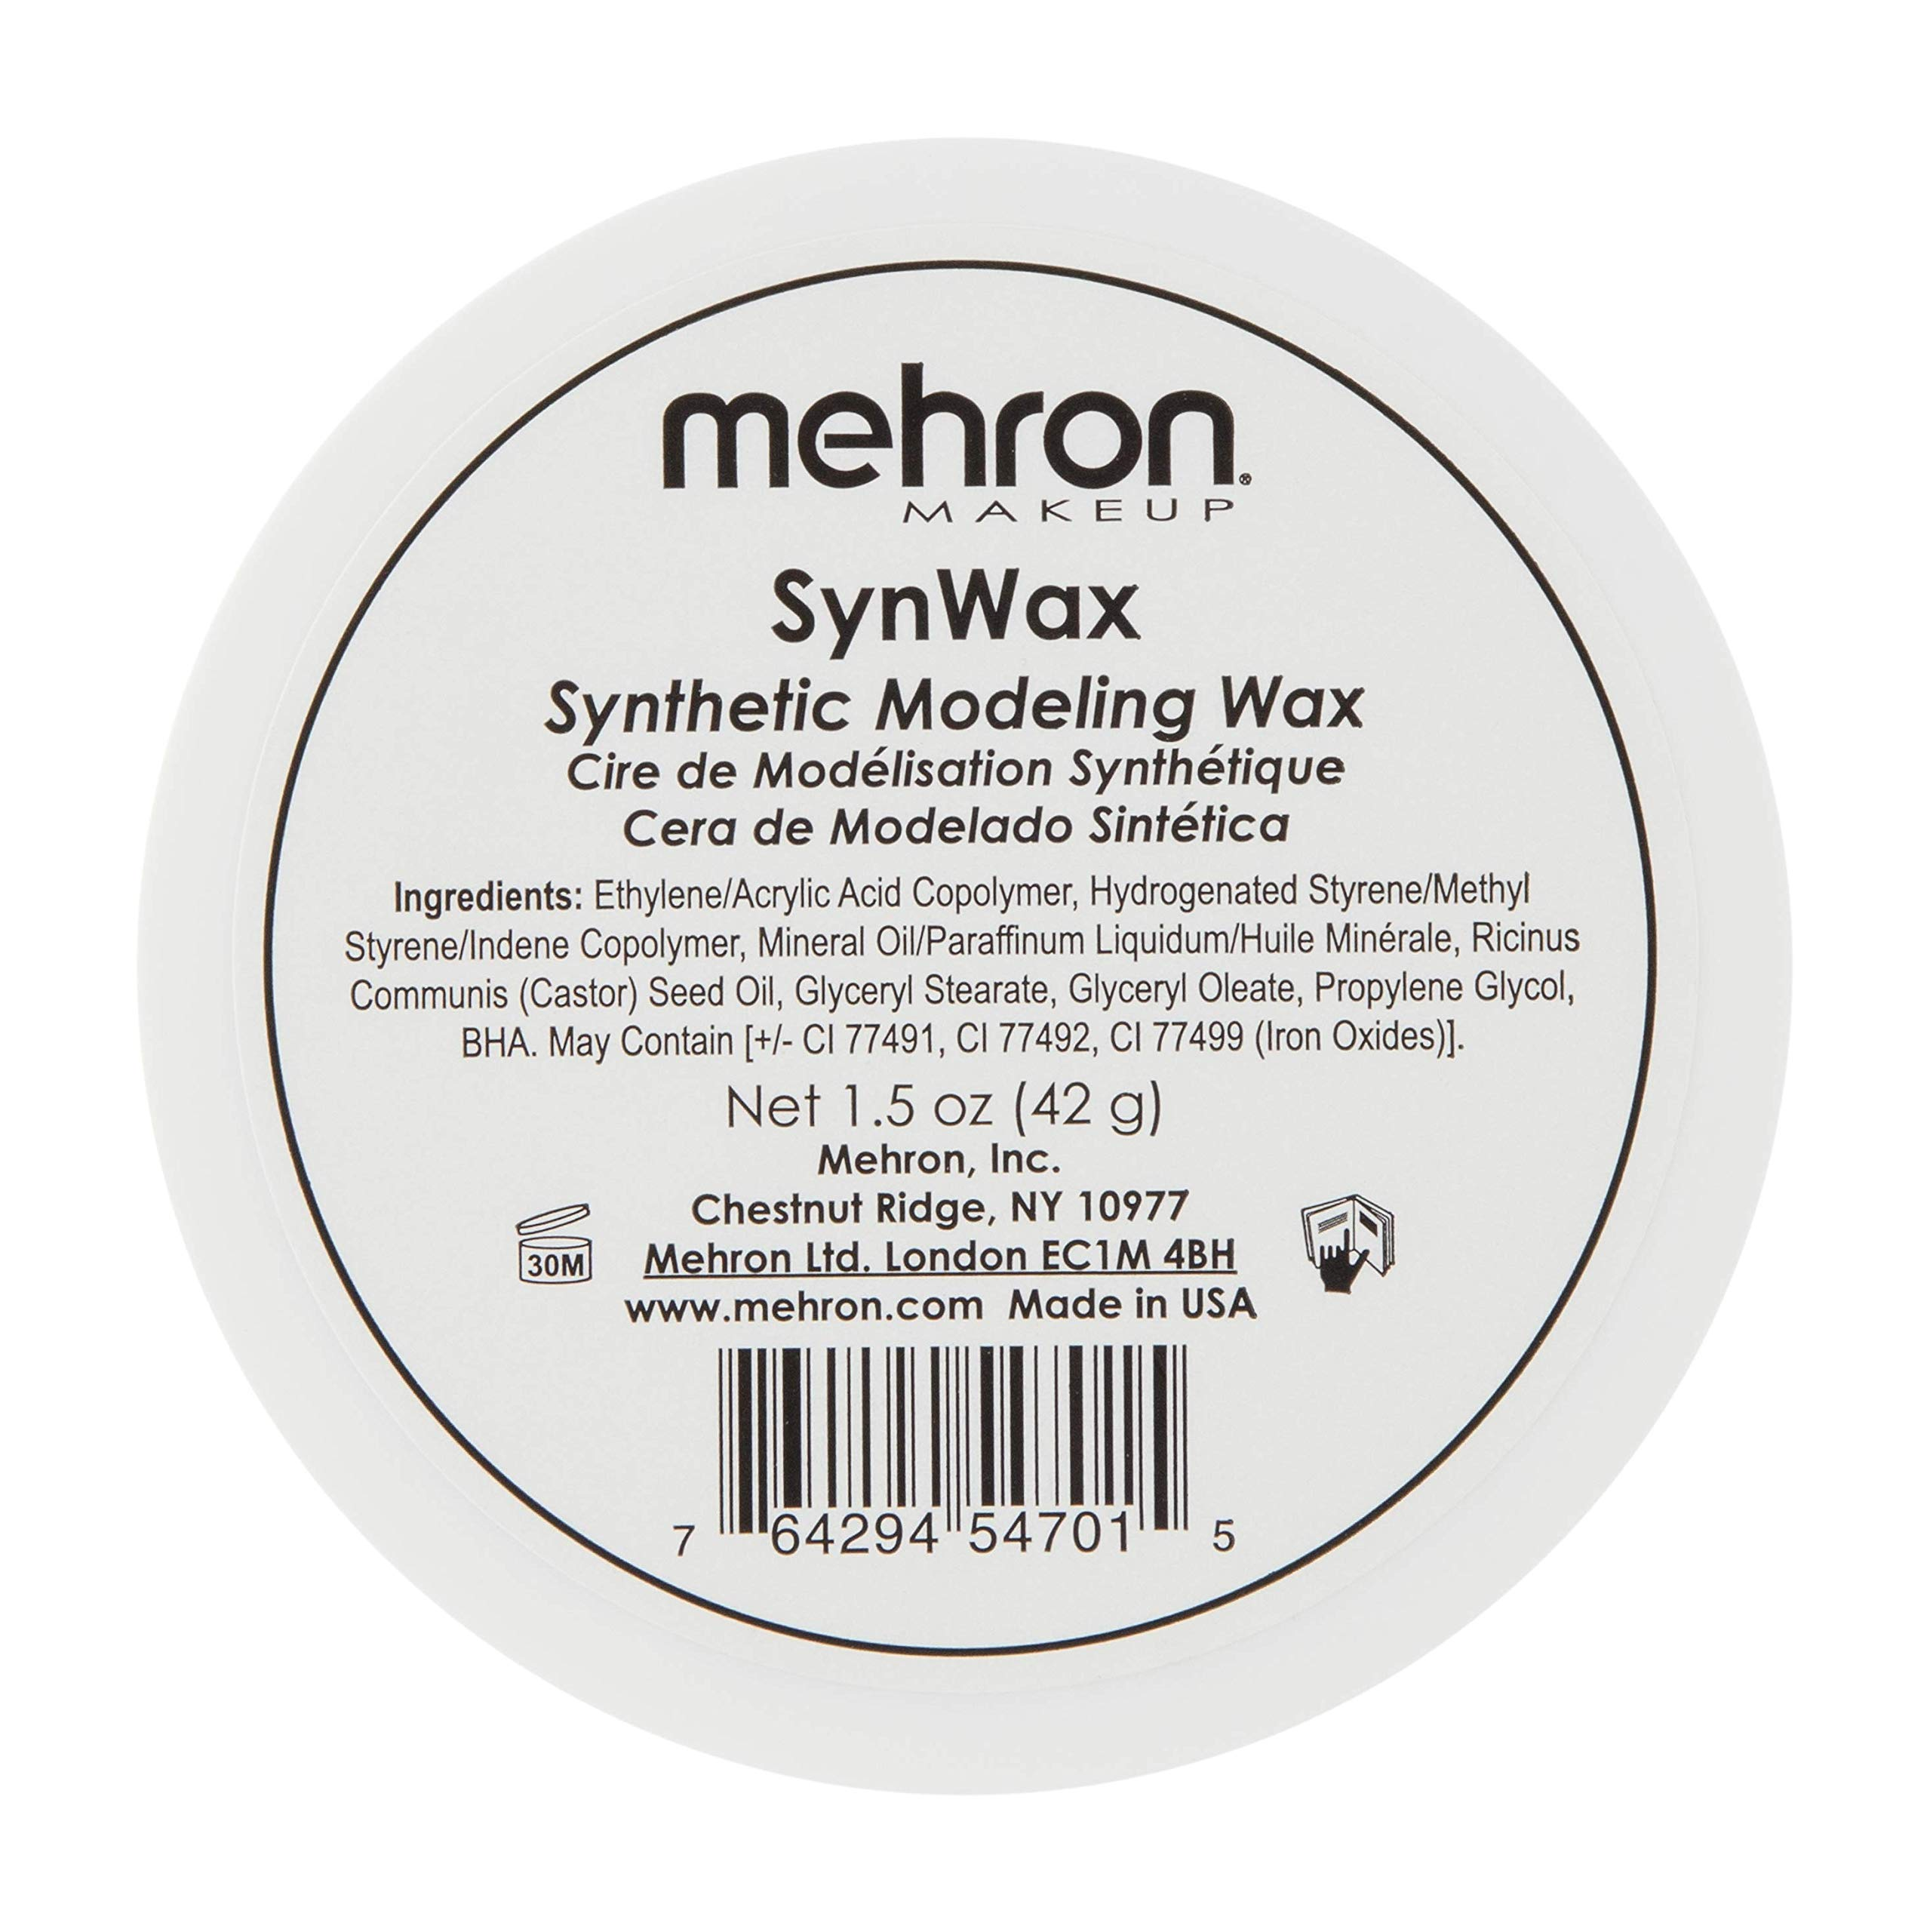 Mehron Makeup SynWax Synthetic Modeling Wax (1.5 oz)